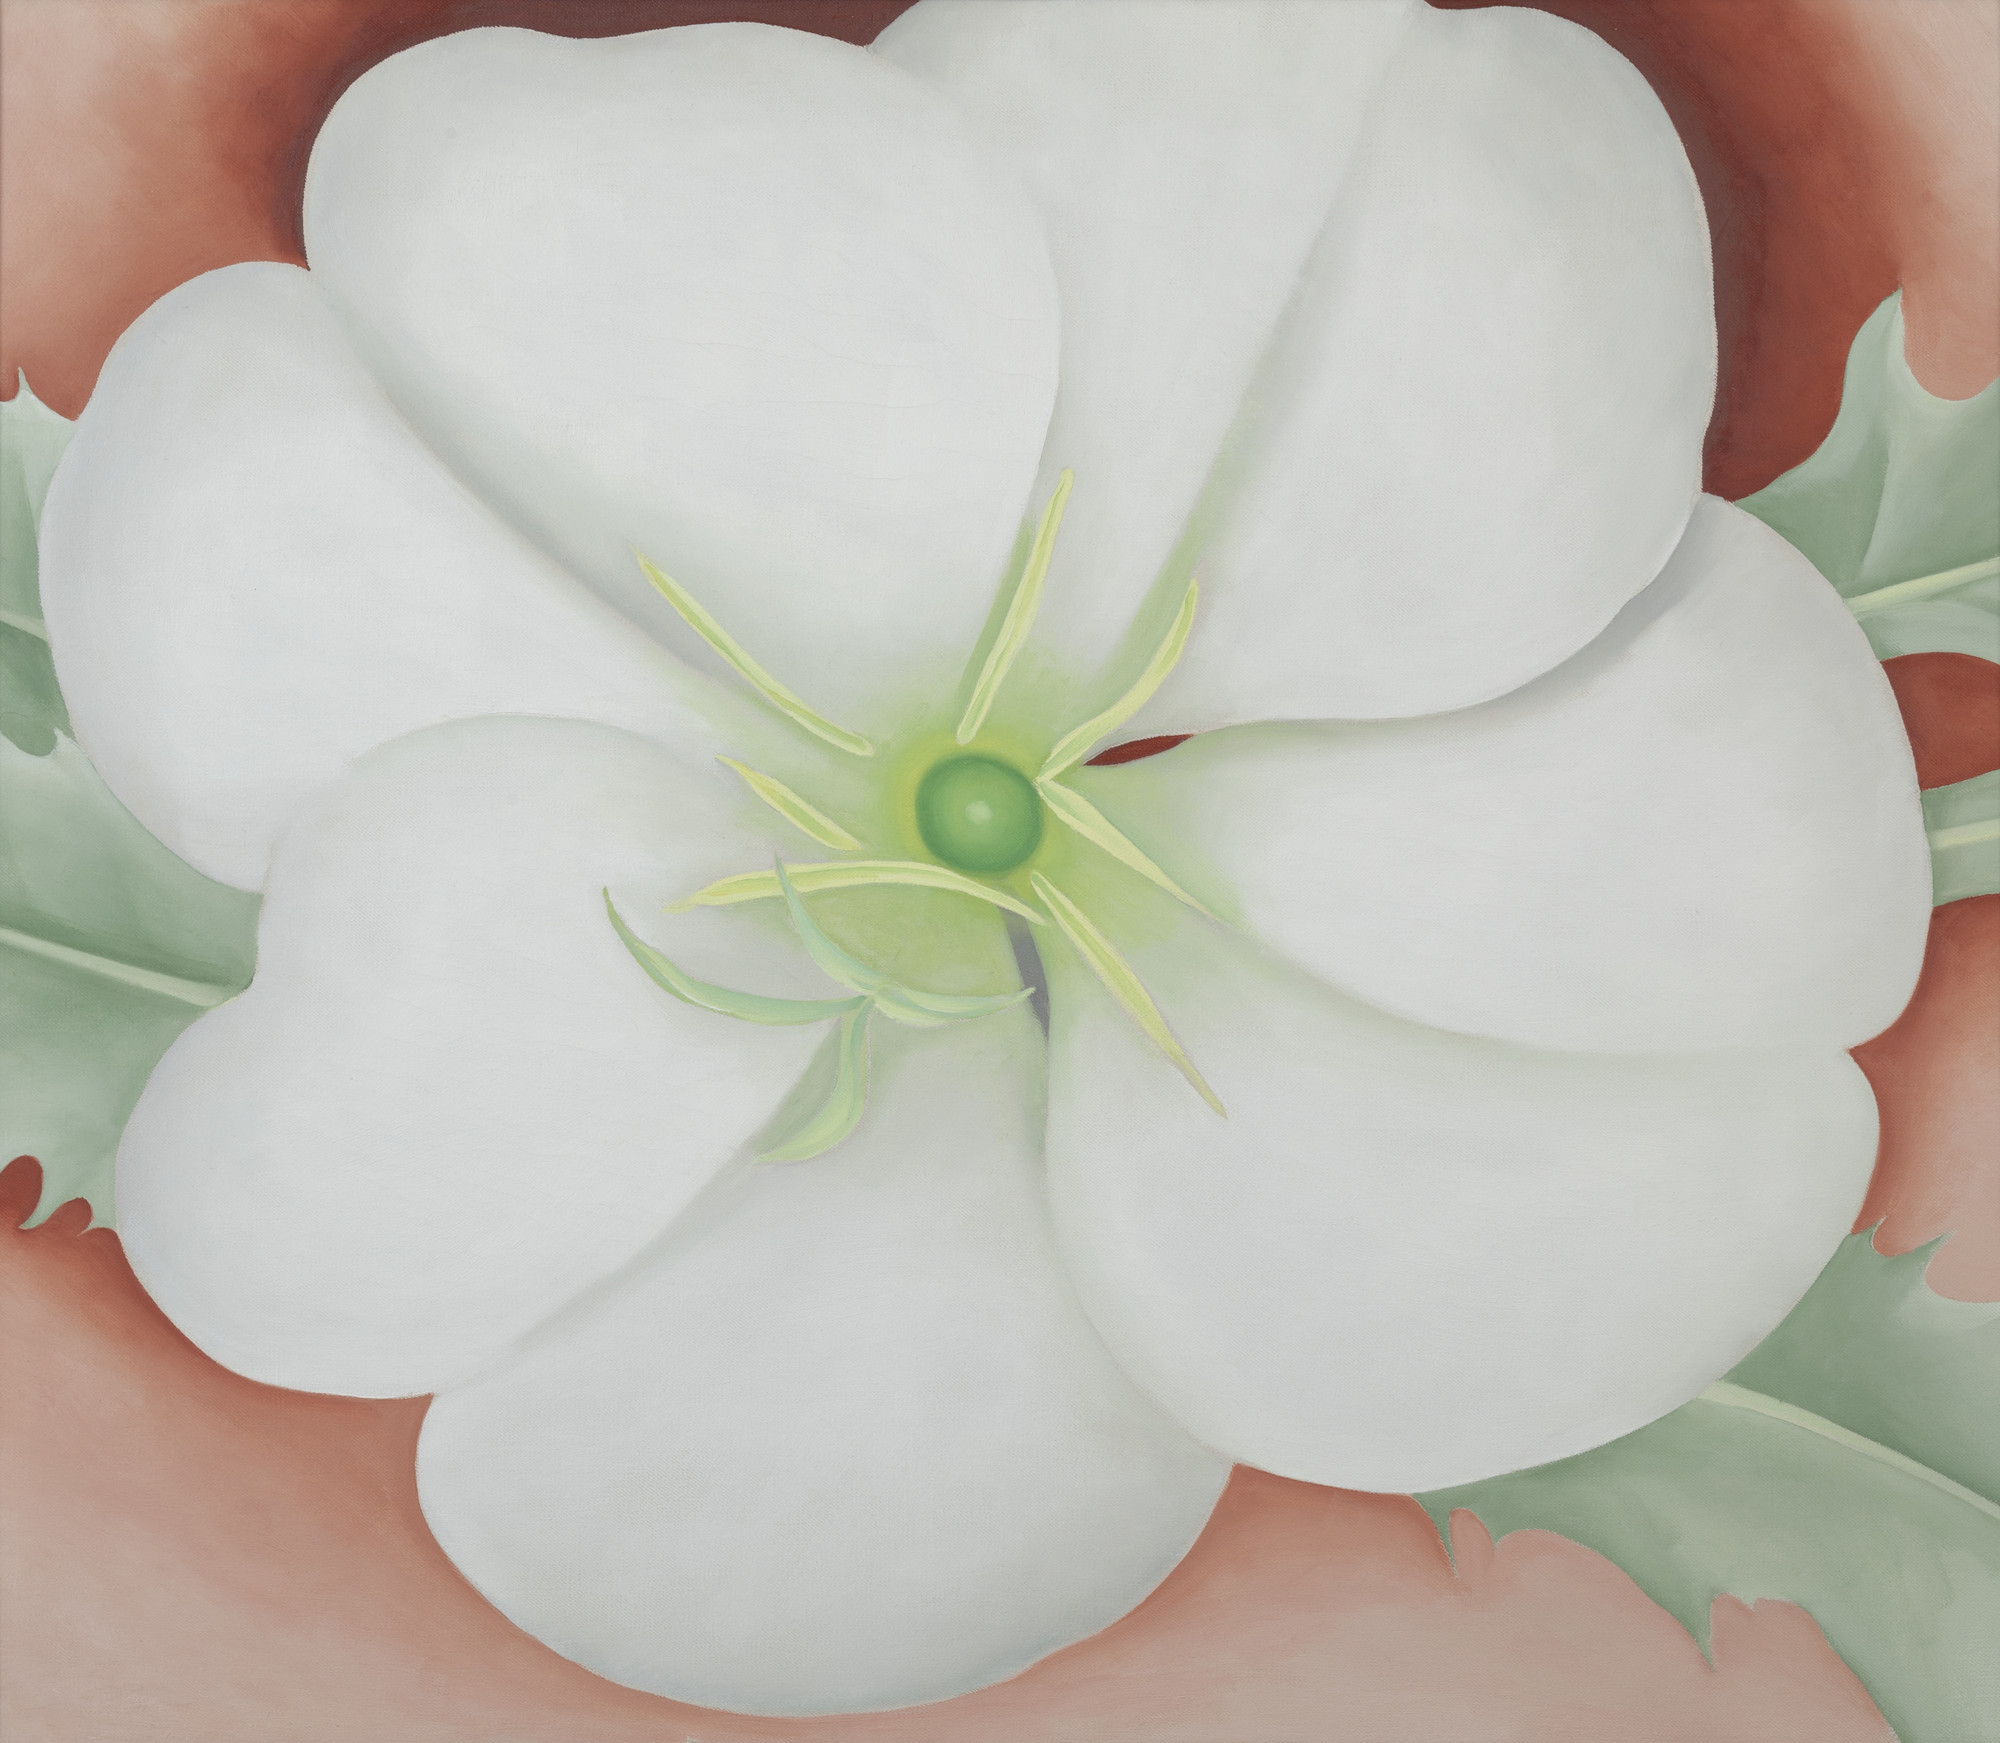 Georgia O'Keeffe | White Flower on Red Earth, No.1 | Newark Museum ...